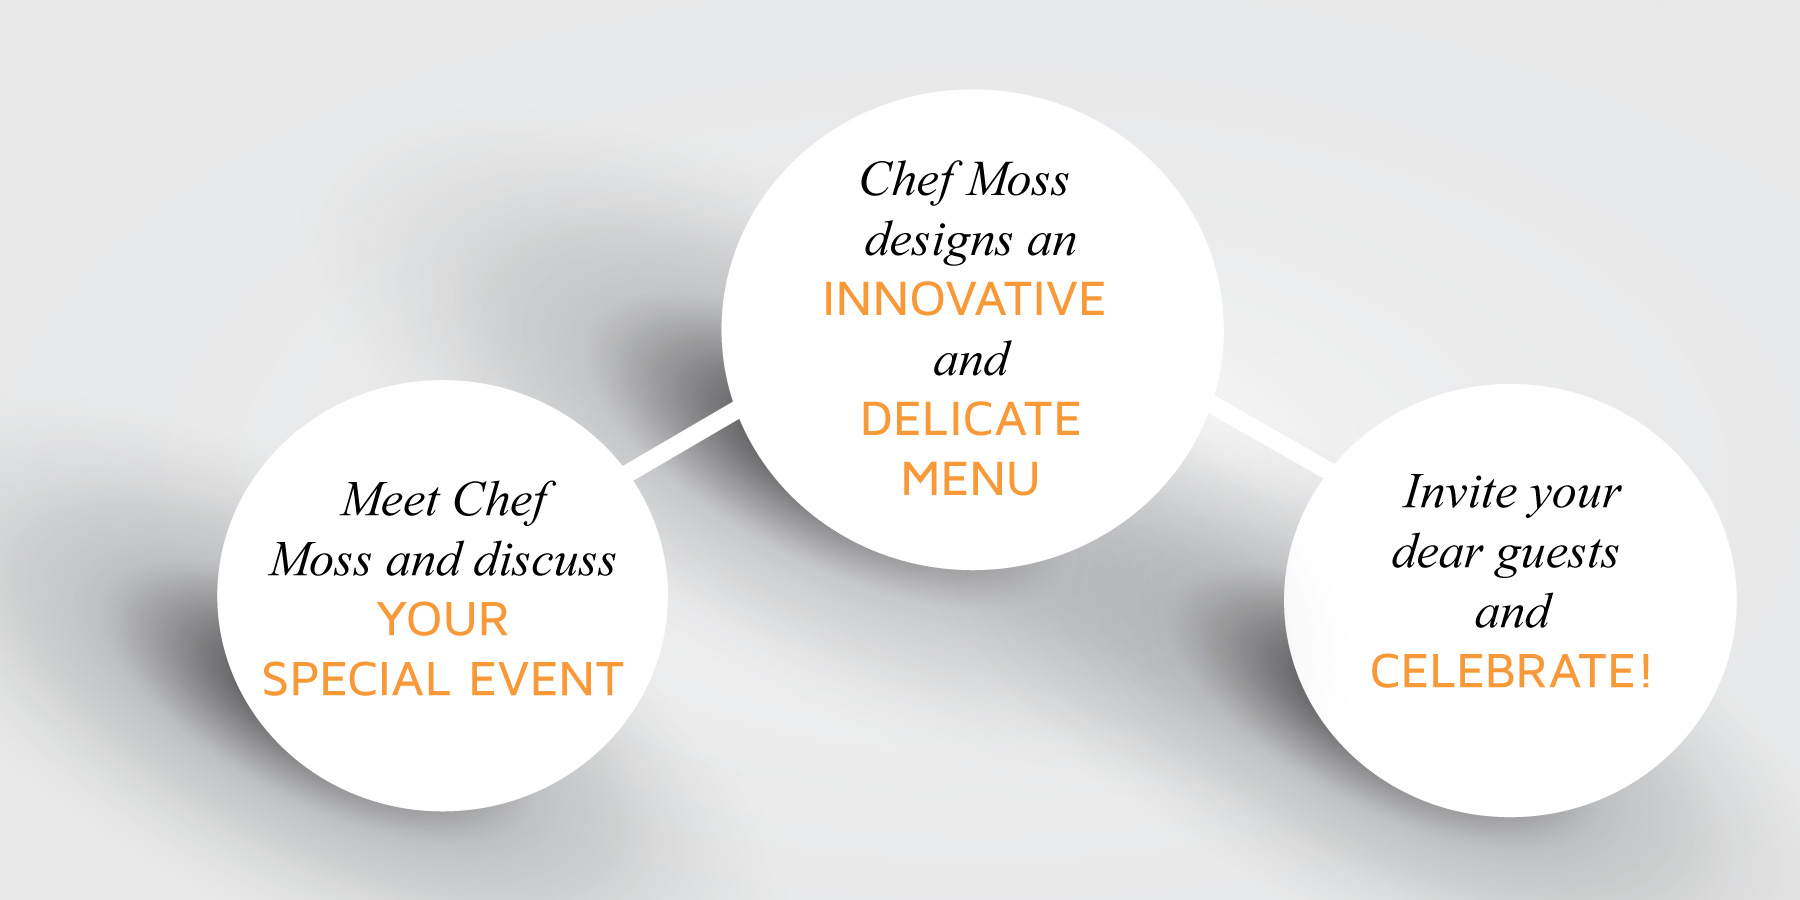 1- Meet with Chef Moss and discuss your special event  2- Chef Moss designs a very innovative and delicate Menu  3- Invite your guests and celebrate!